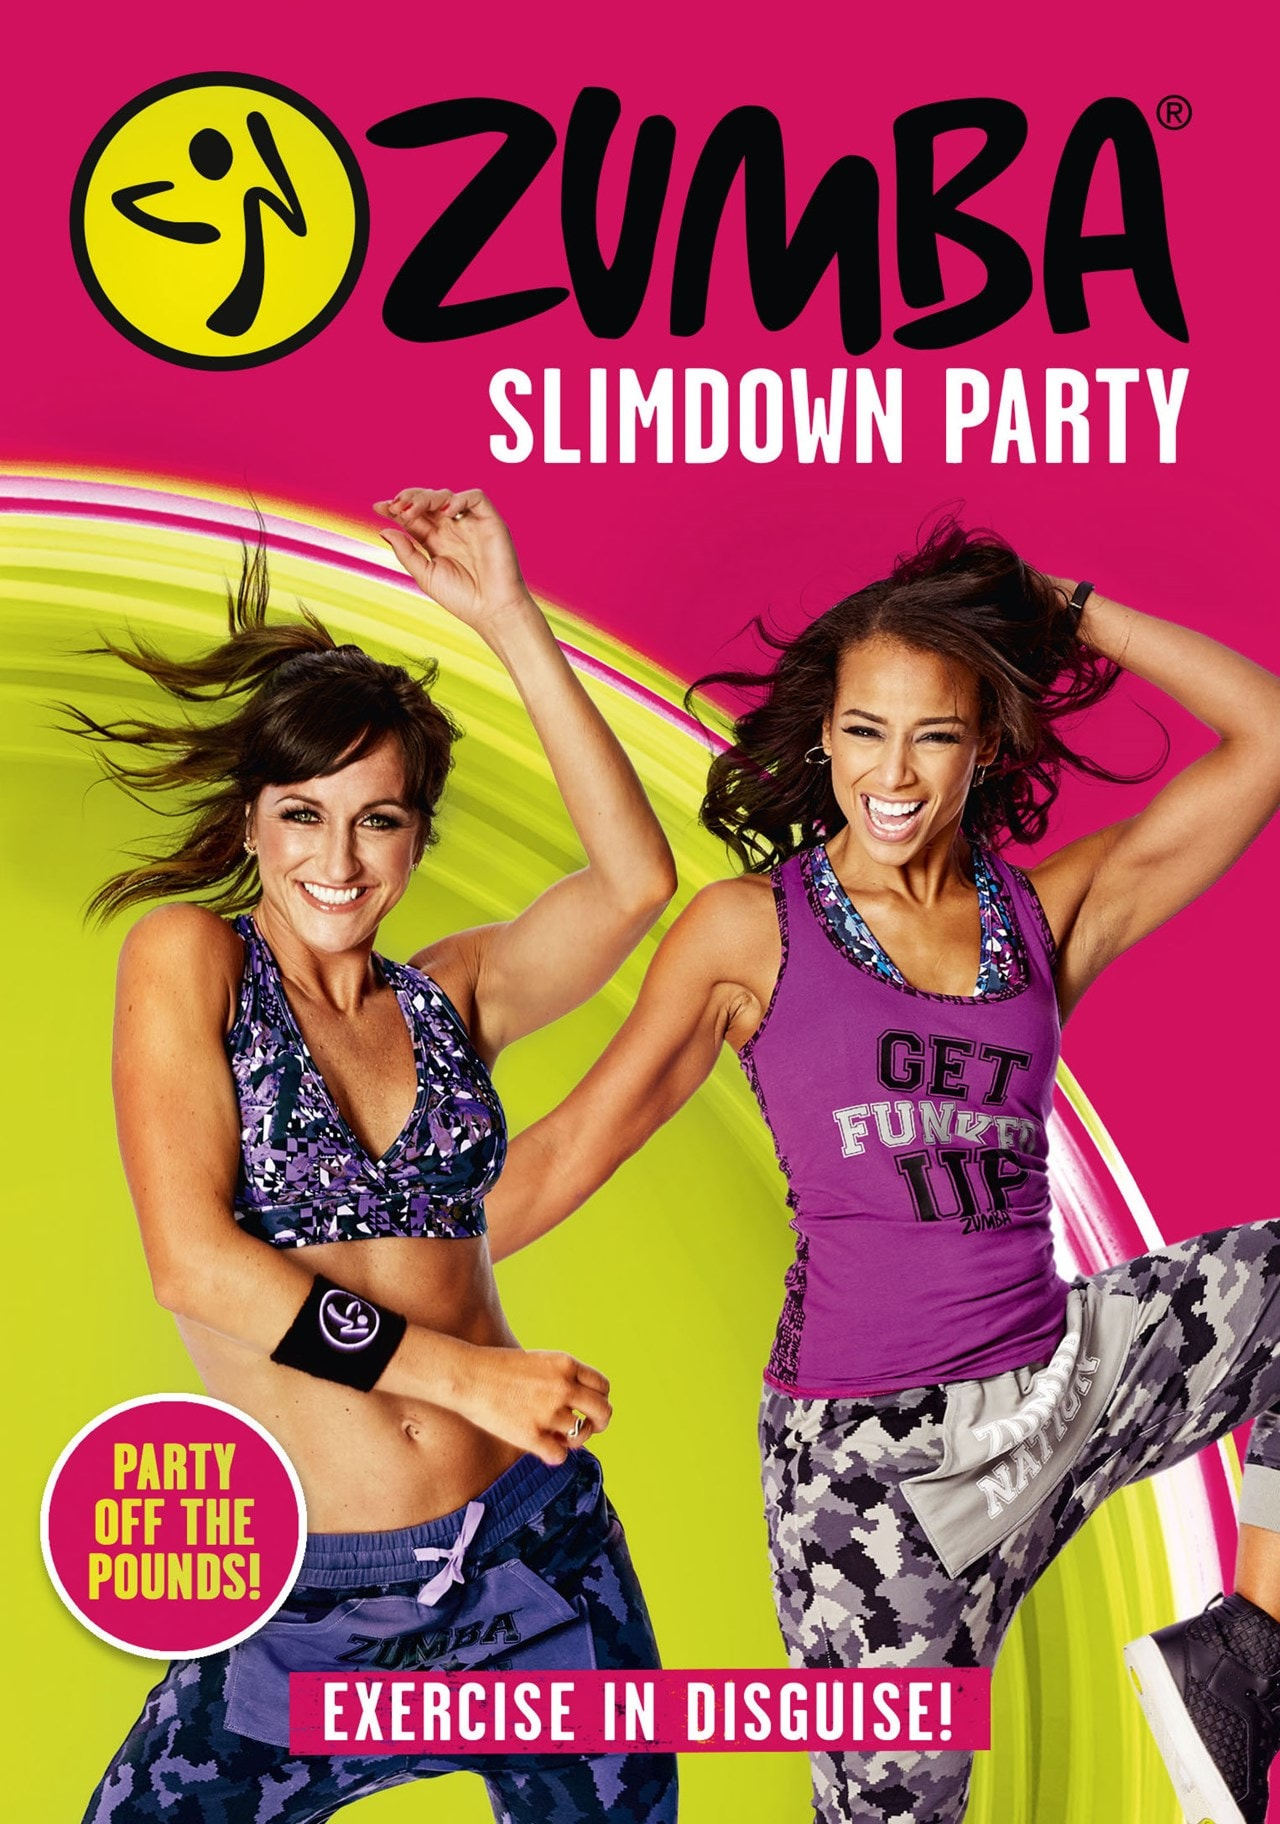 Zumba Slimdown Party - 1